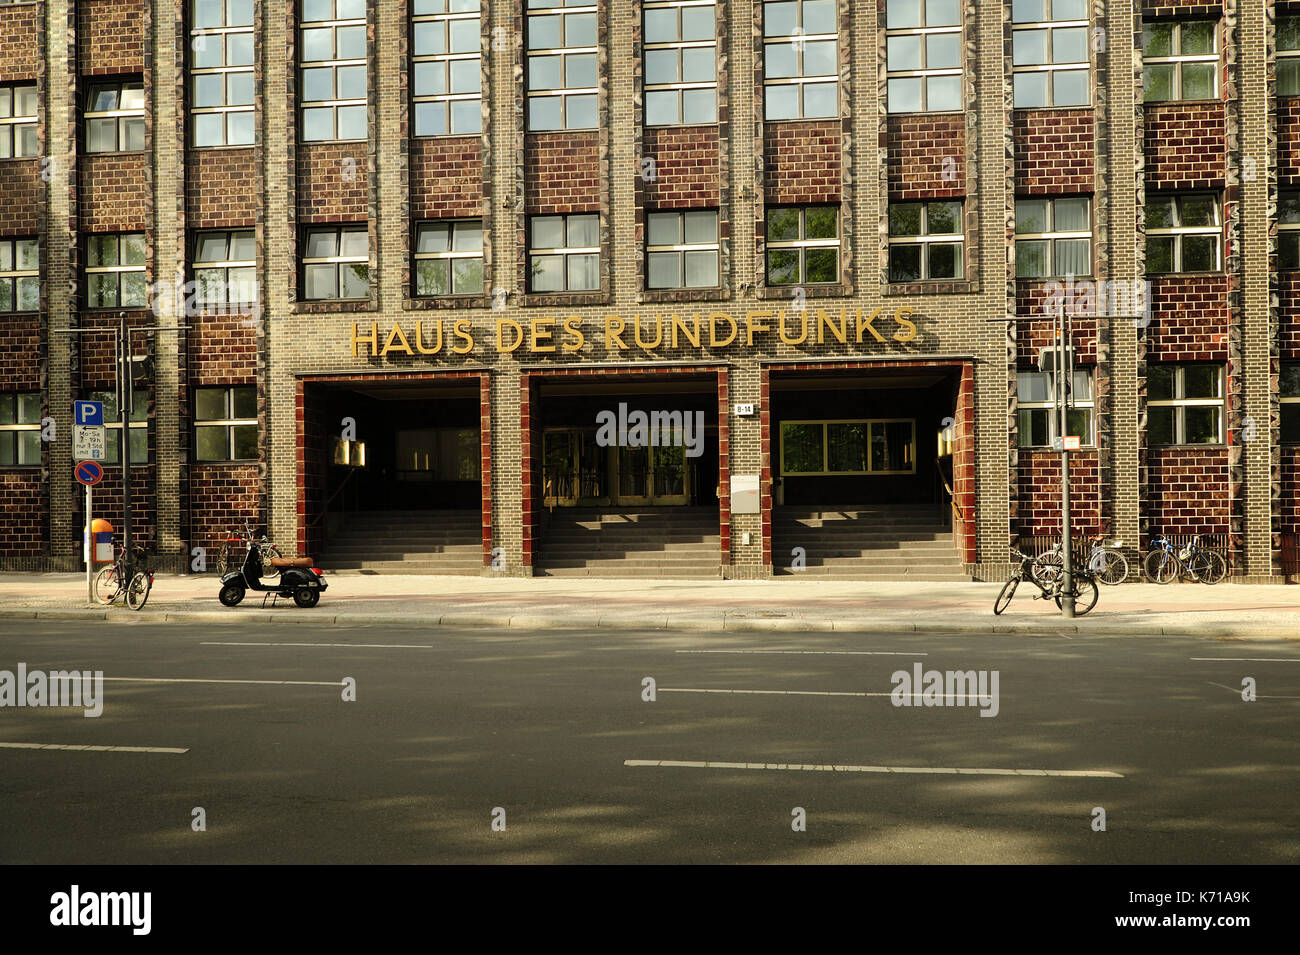 Berlin, architecture, haus des rundfunks berlin, Hans Poelzig,House of Broadcasting, RBB, Stock Photo